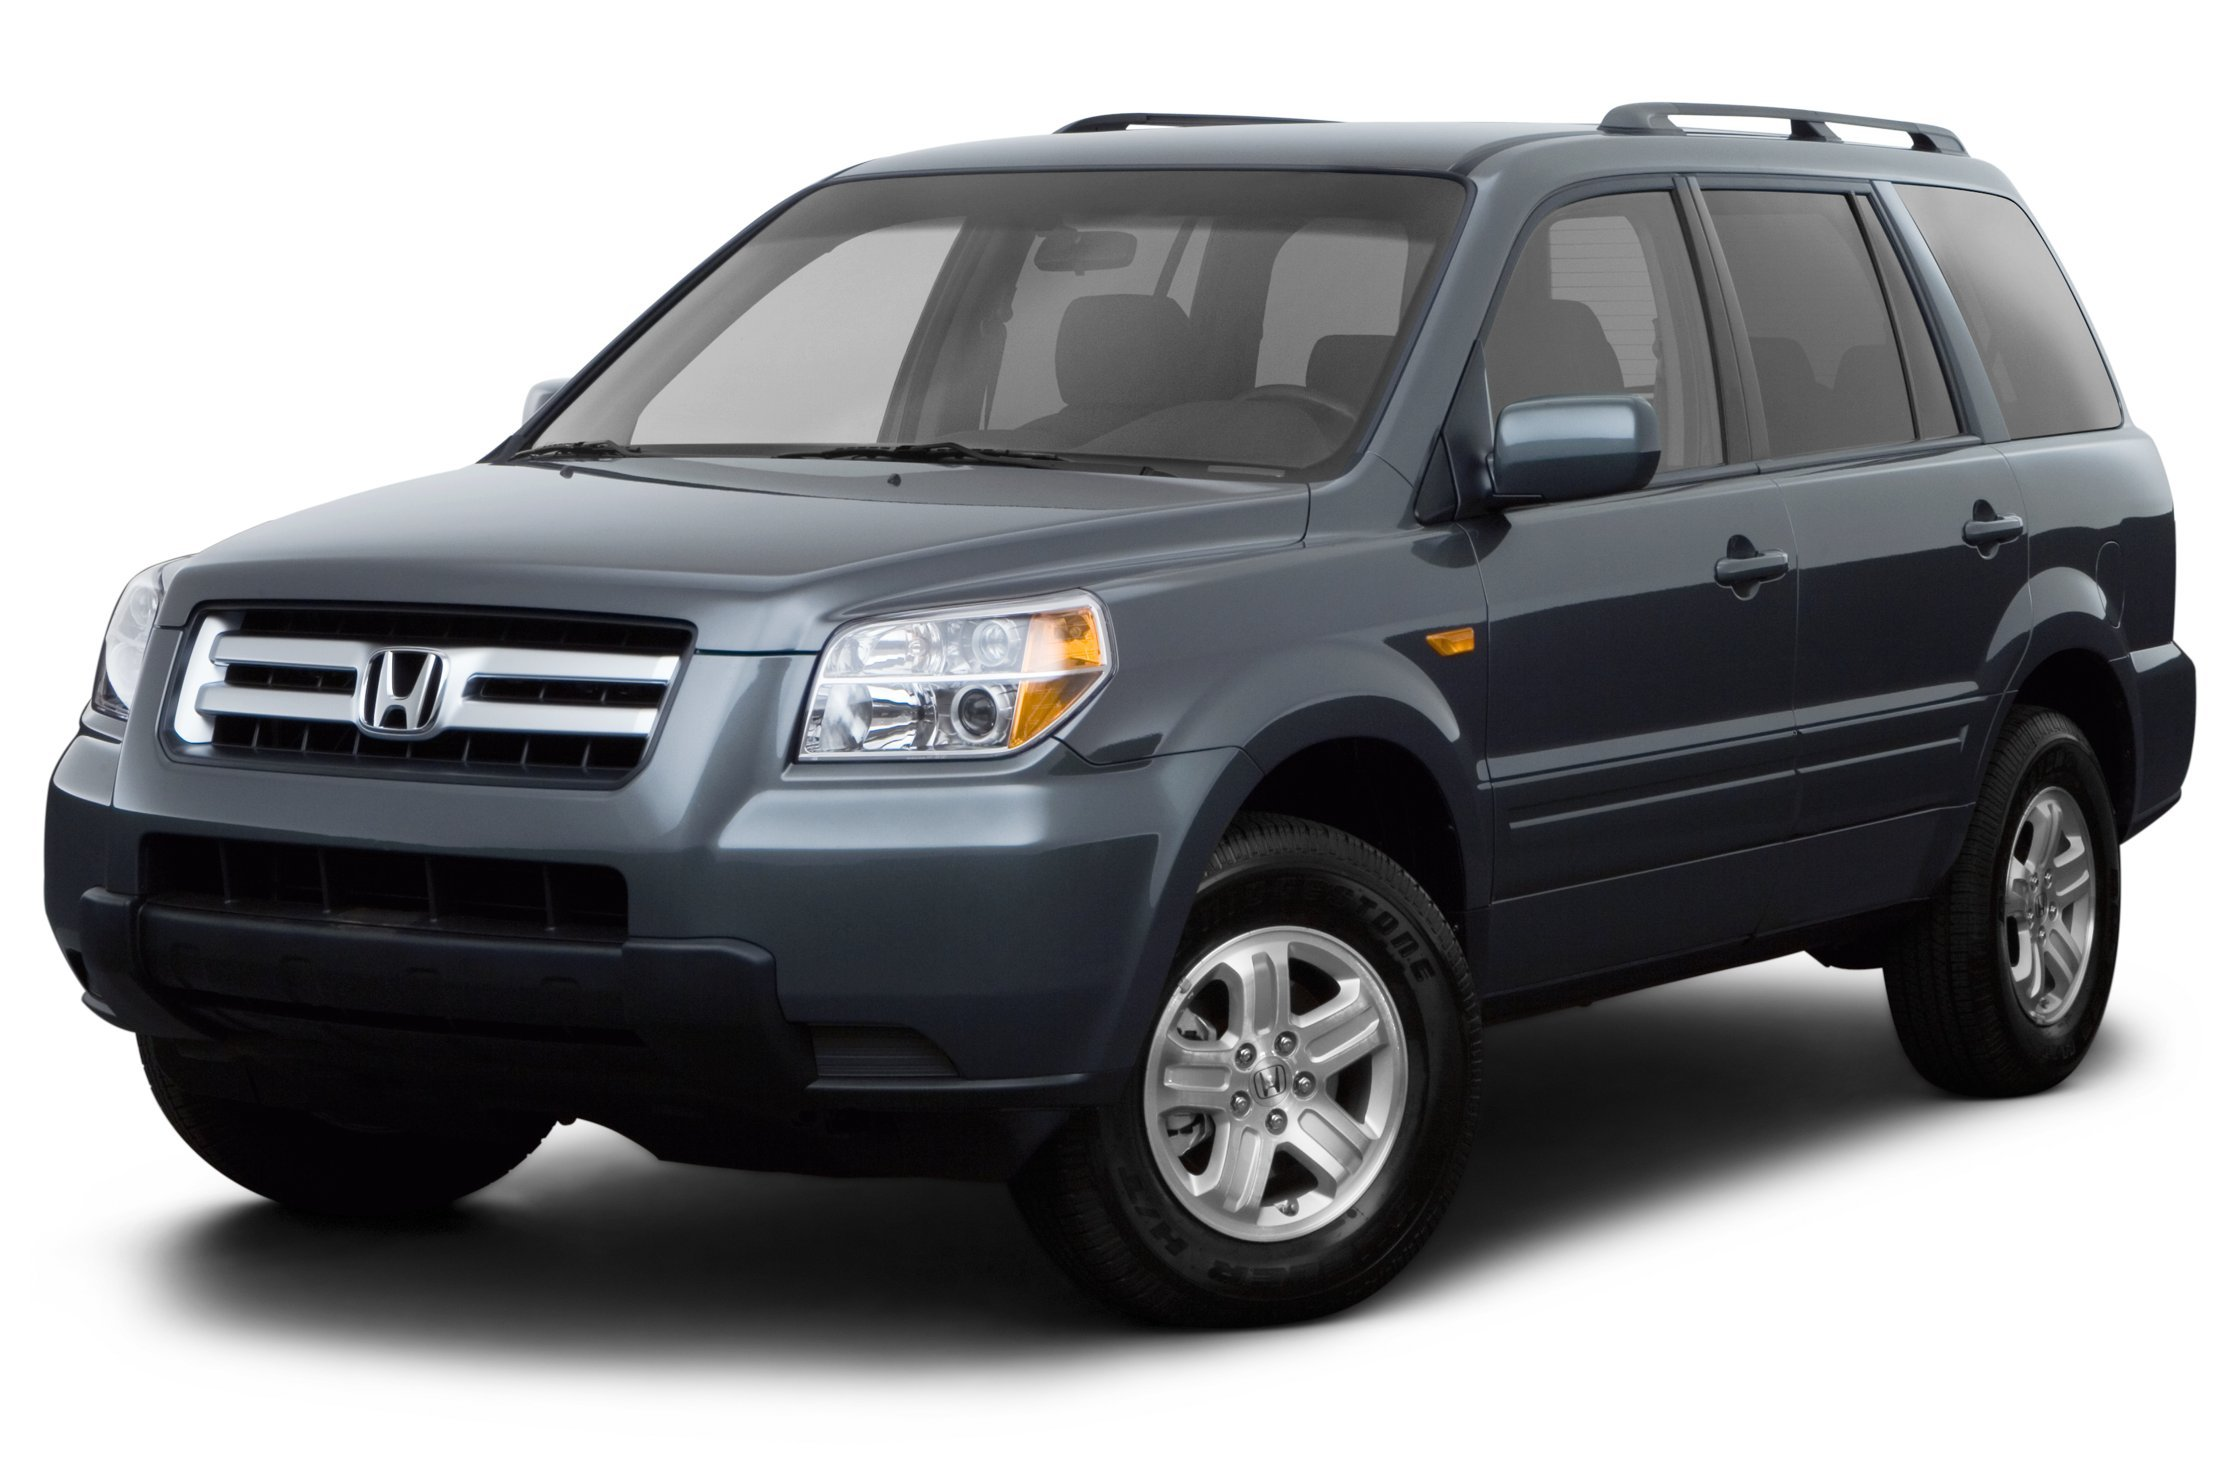 2008 honda pilot reviews images and specs vehicles. Black Bedroom Furniture Sets. Home Design Ideas